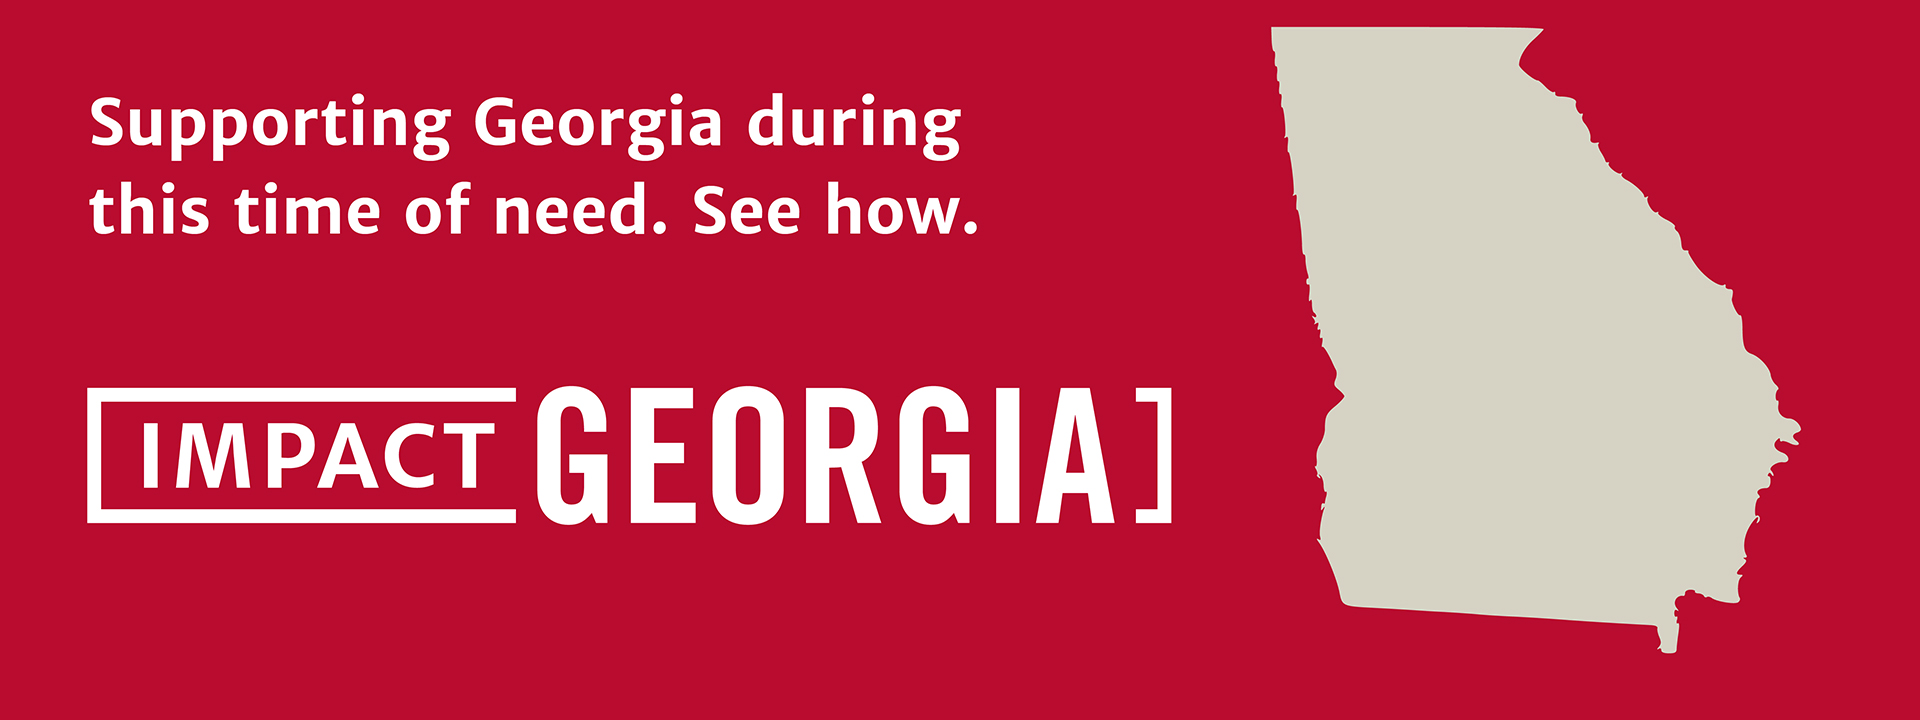 As Georgia's flagship institution, we #CommitTo the economic vitality of our state.